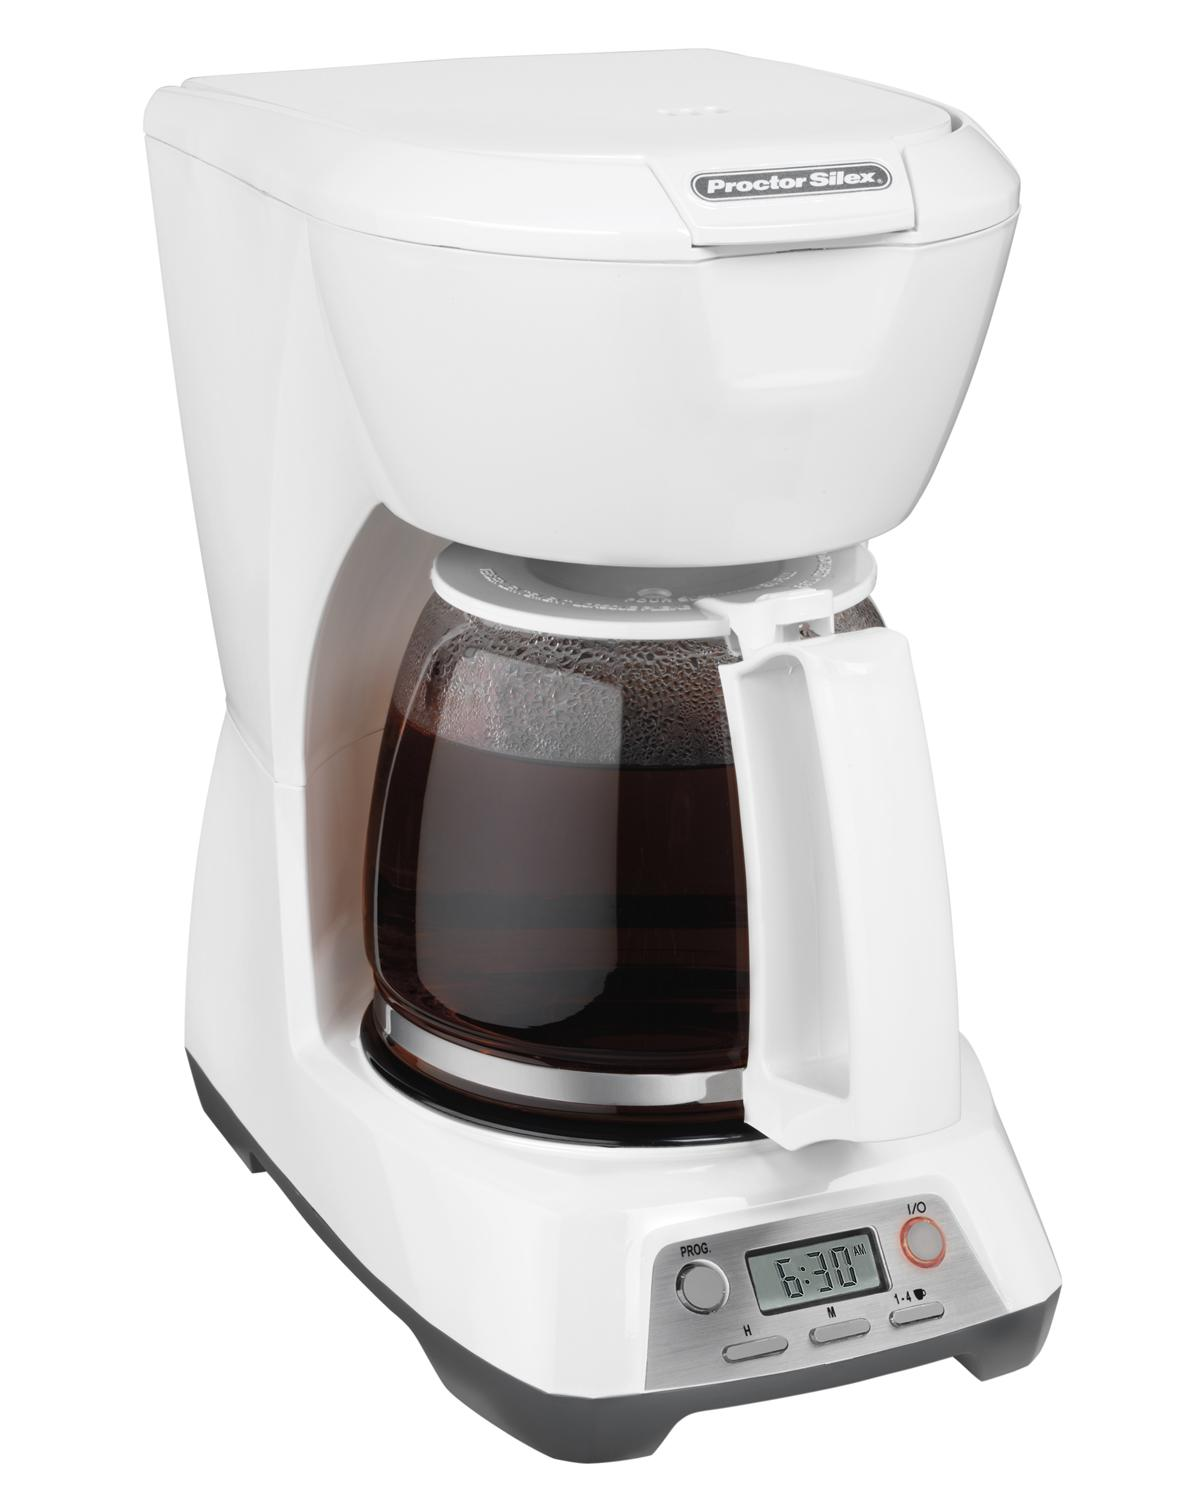 Amazoncom Proctor Silex 43671 12 Cup Programmable Coffeemaker